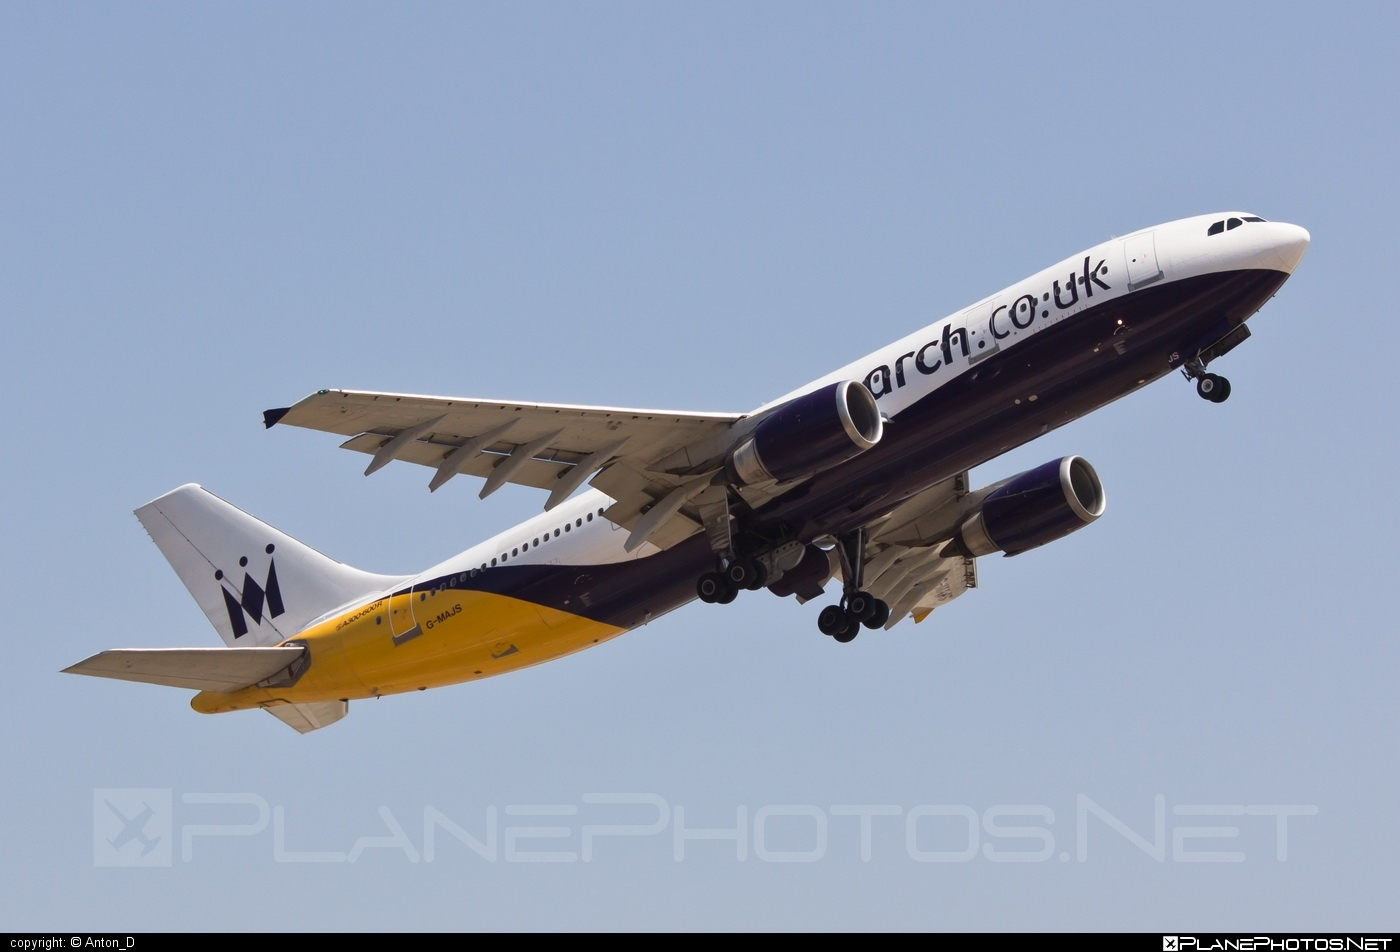 Airbus A300B4-605R - G-MAJS operated by Monarch Airlines #a300 #airbus